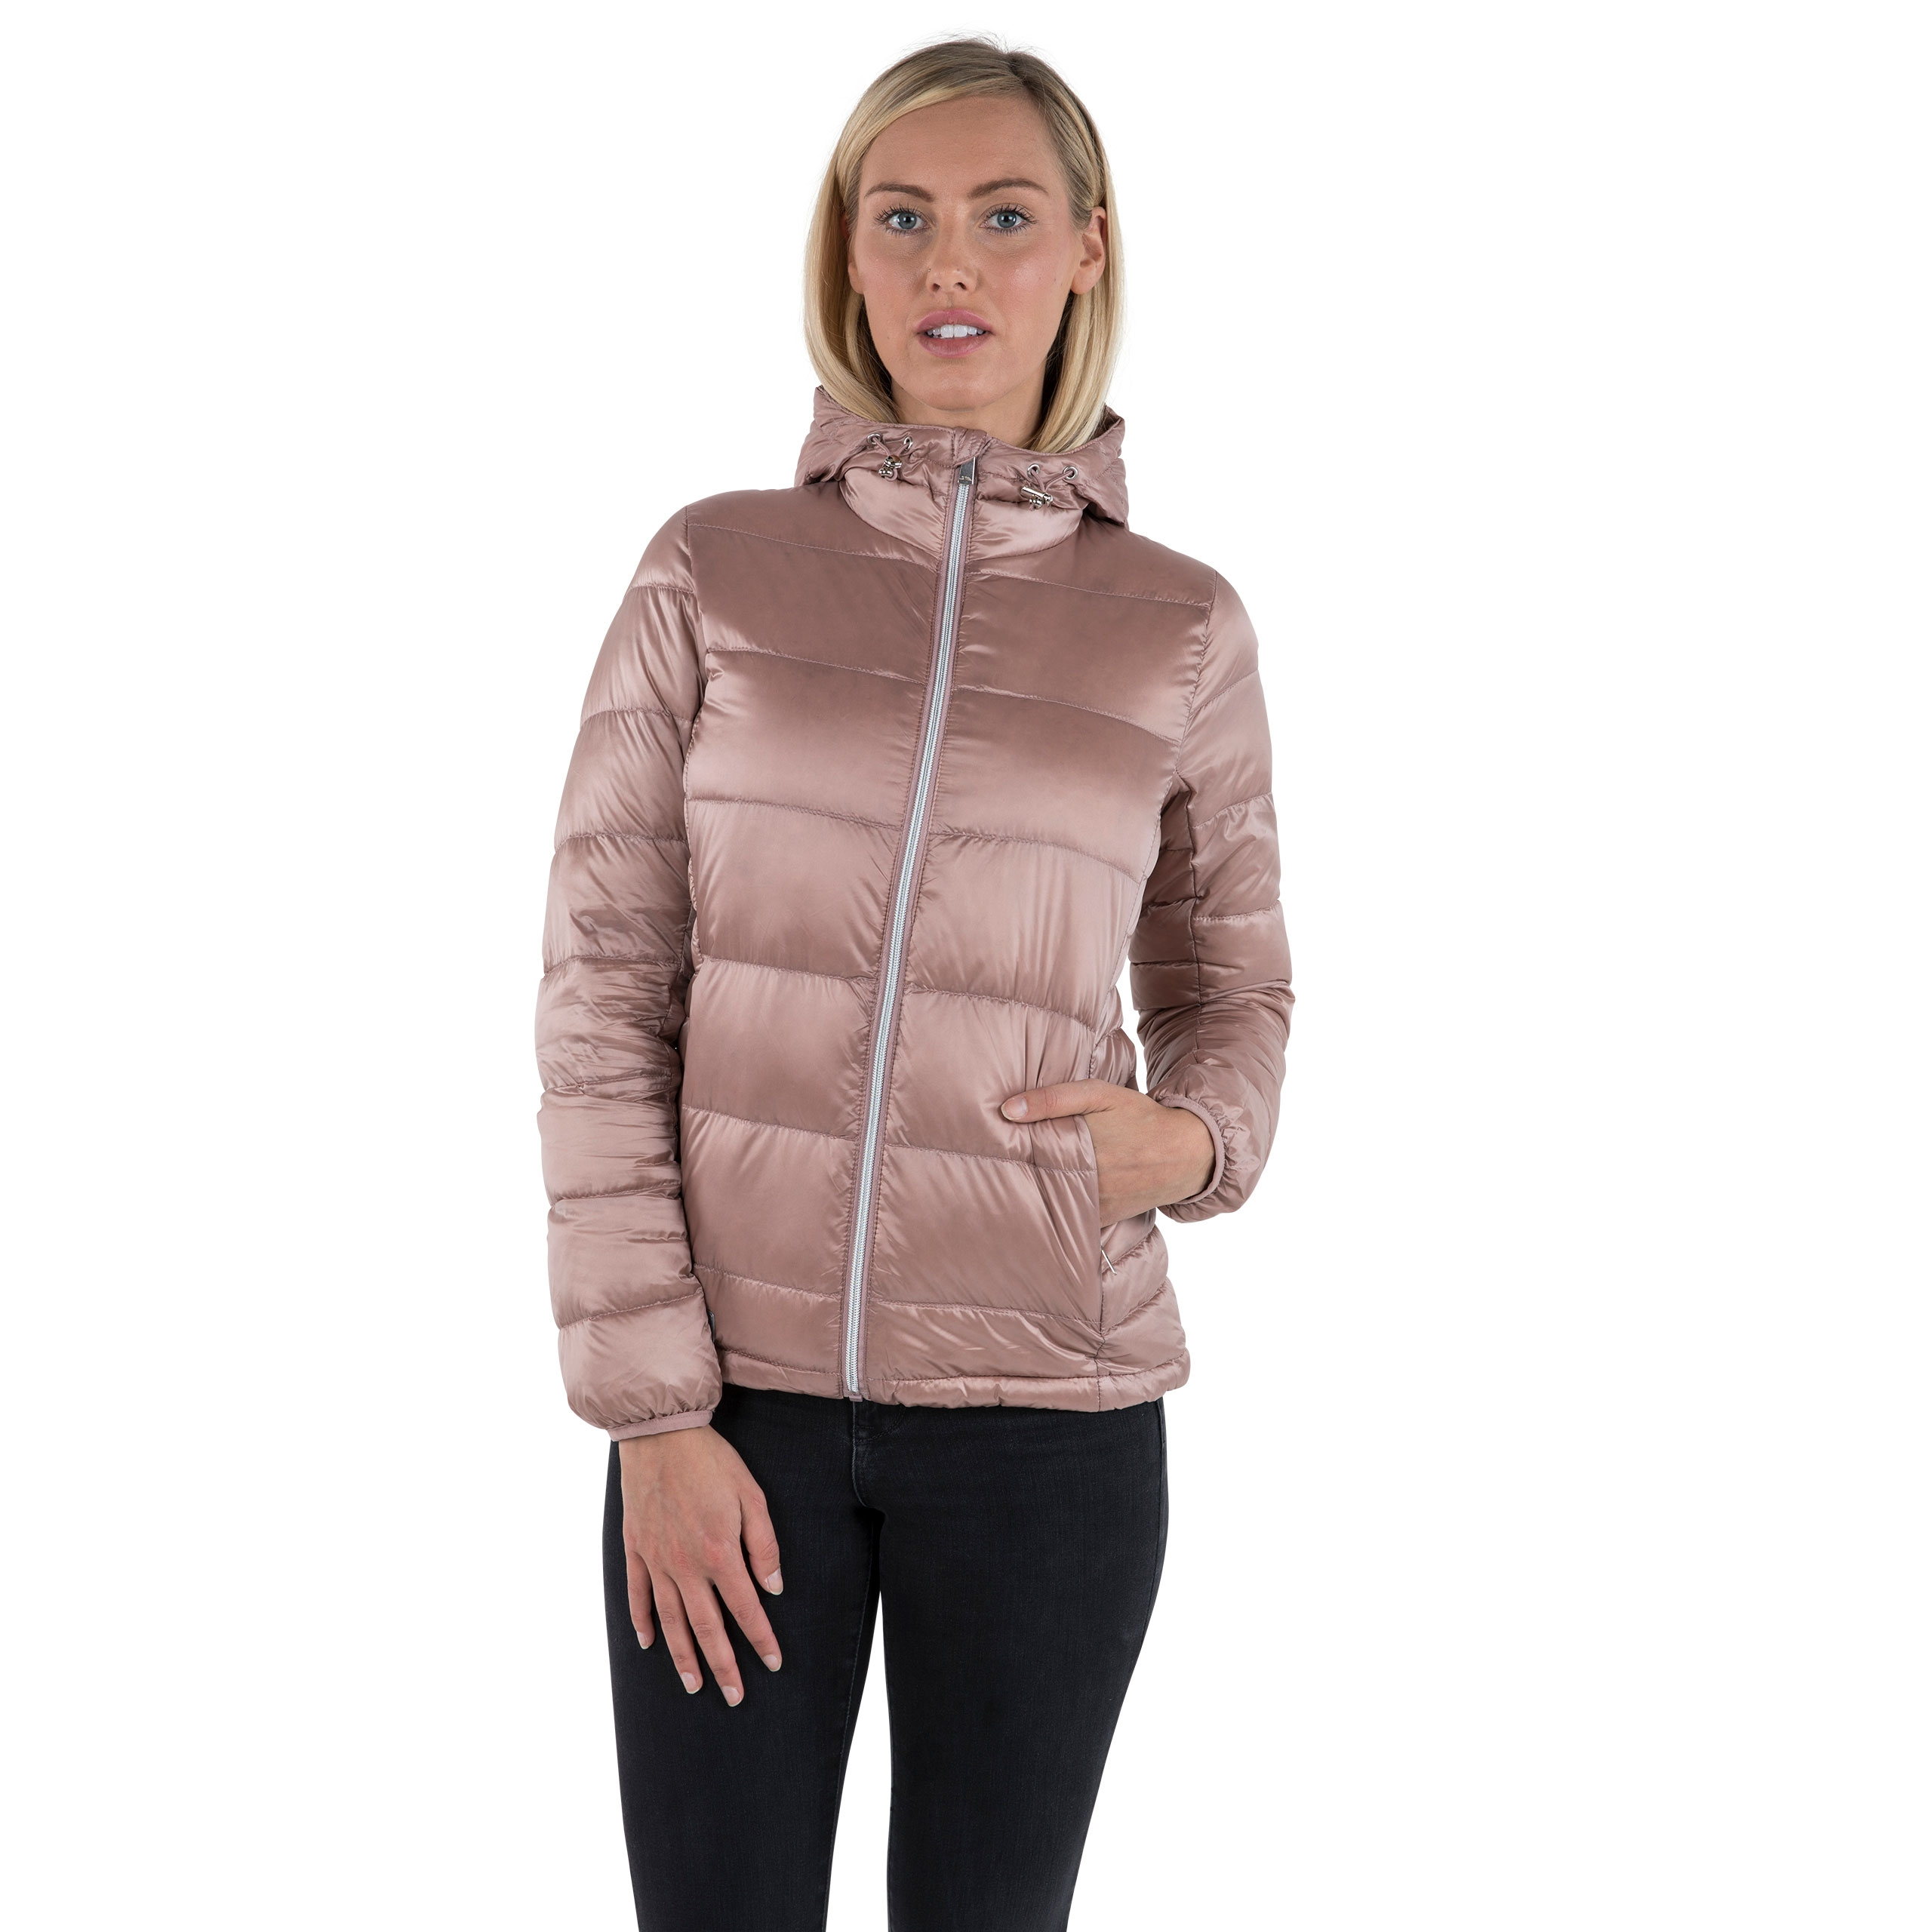 Bernadette Womens Hooded Down Jacket